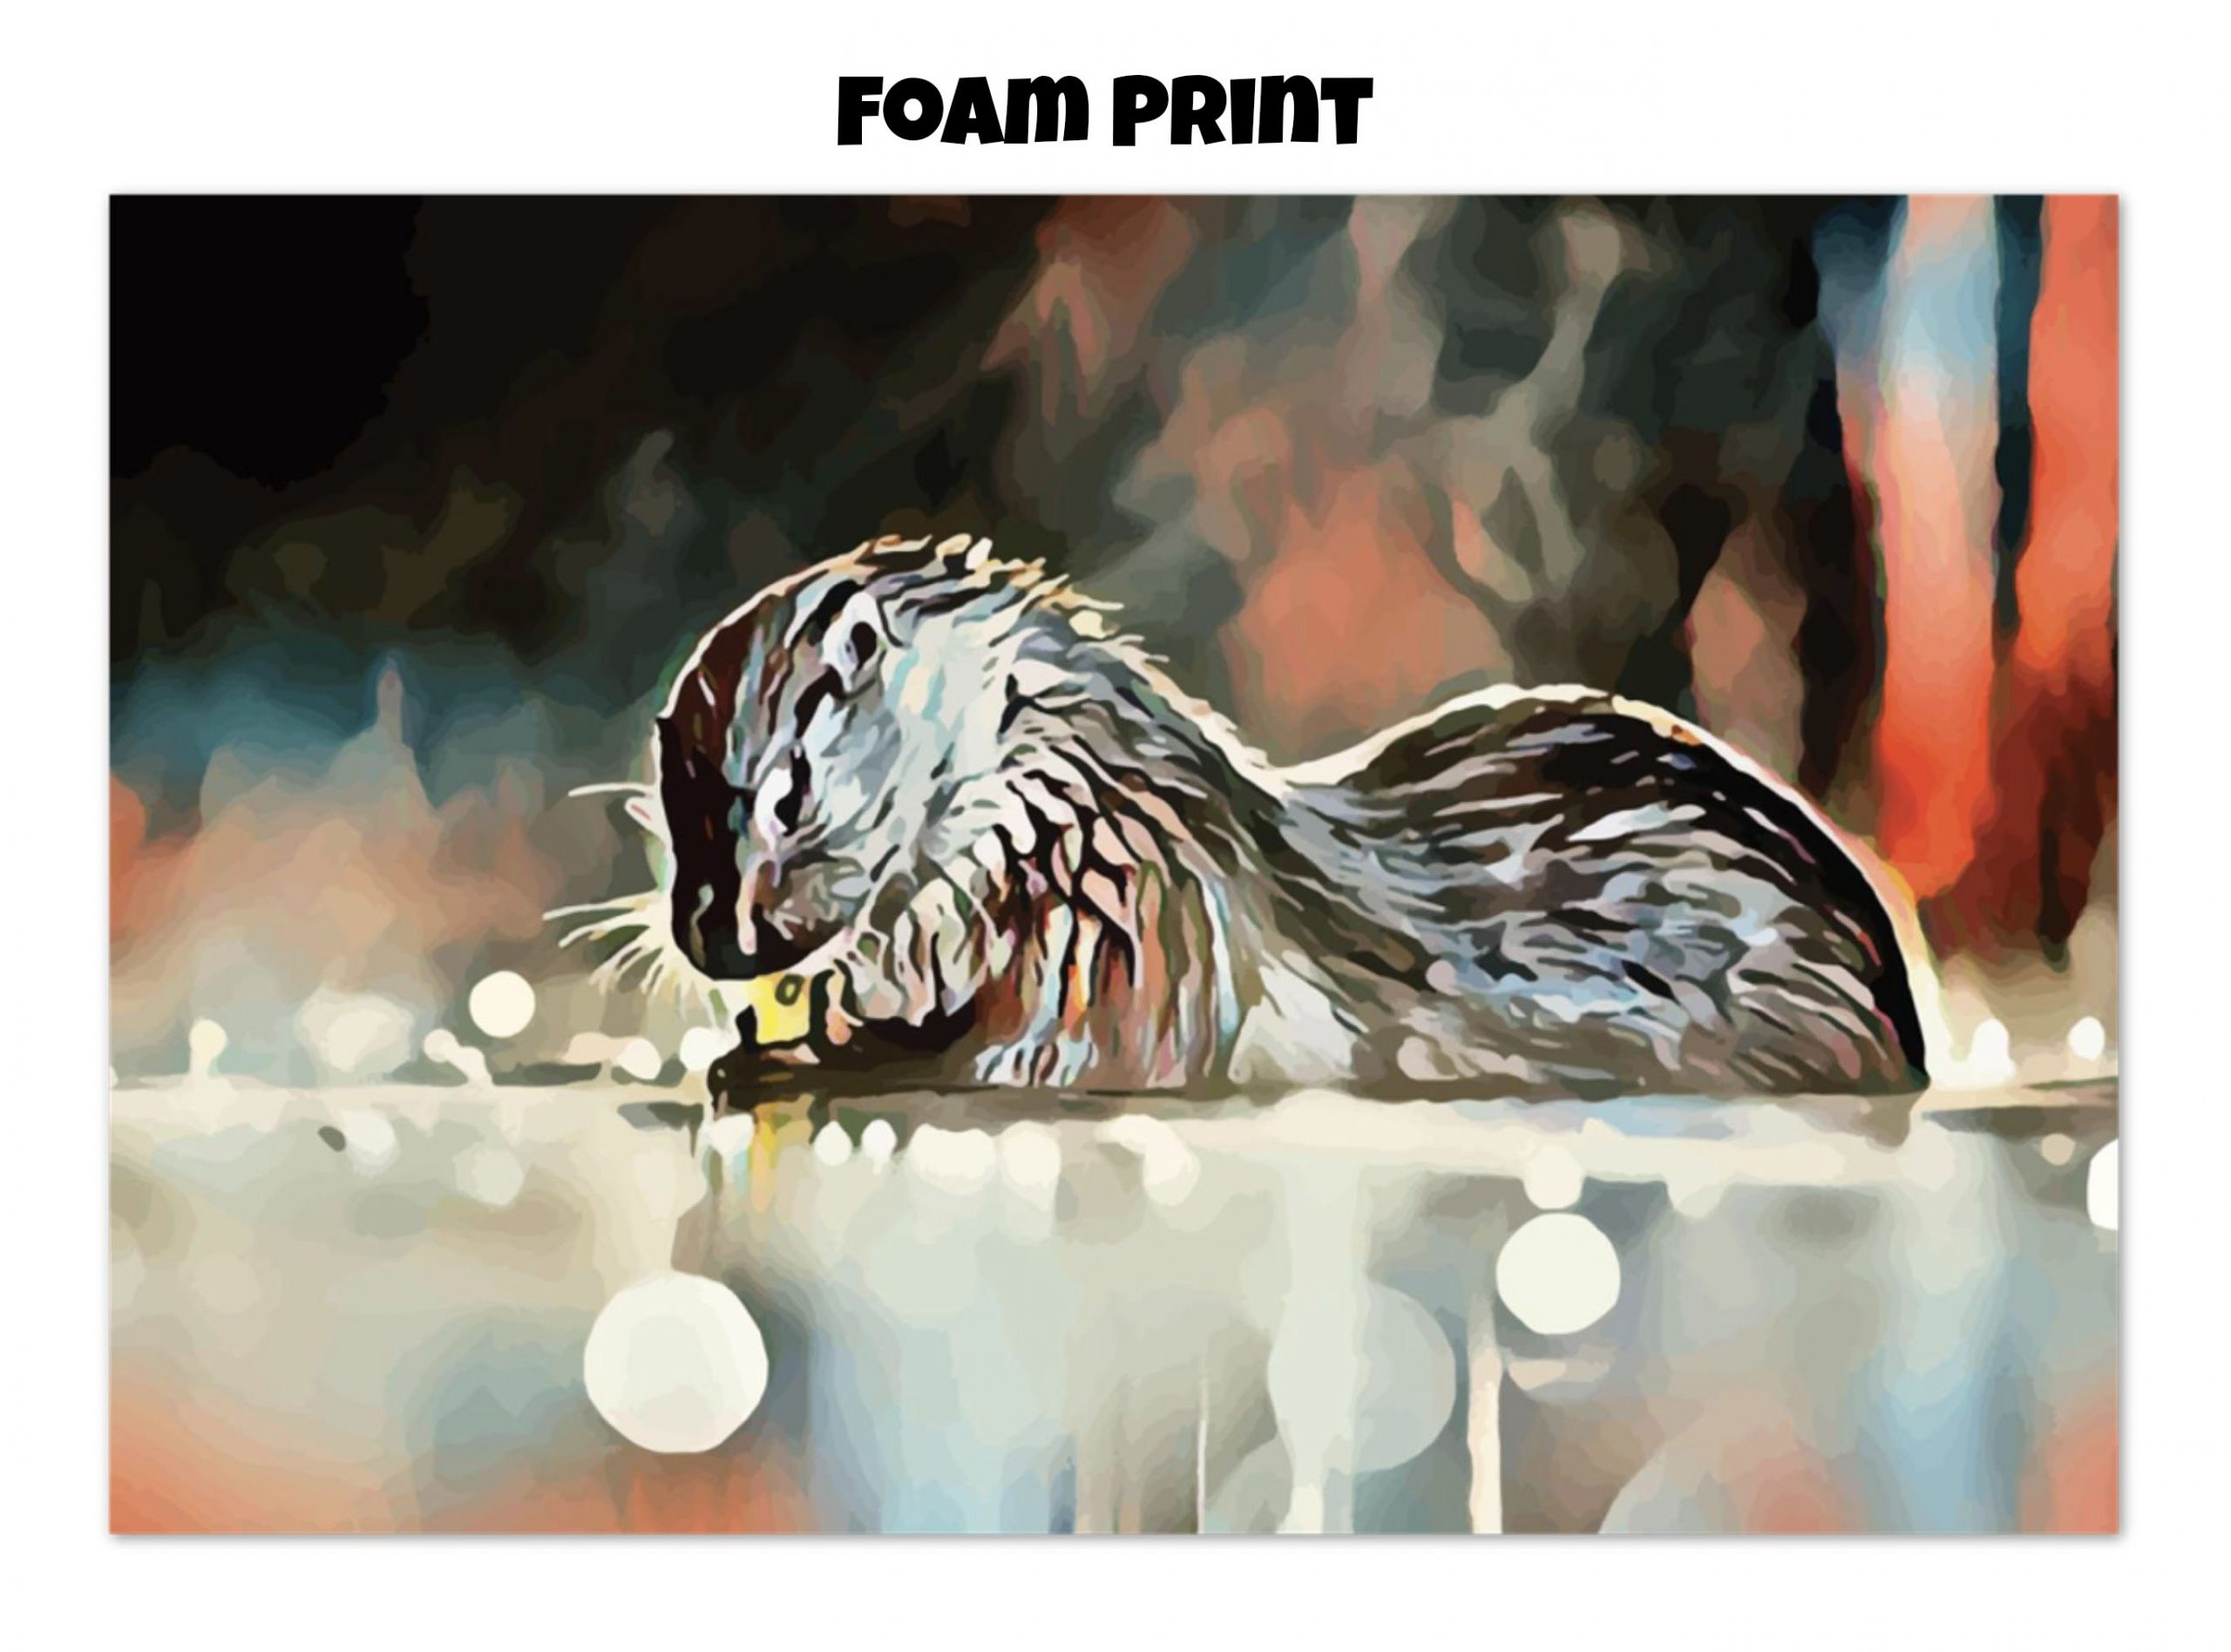 Foam print of an otter washing its hands in tones of red, blue, and silver-grey